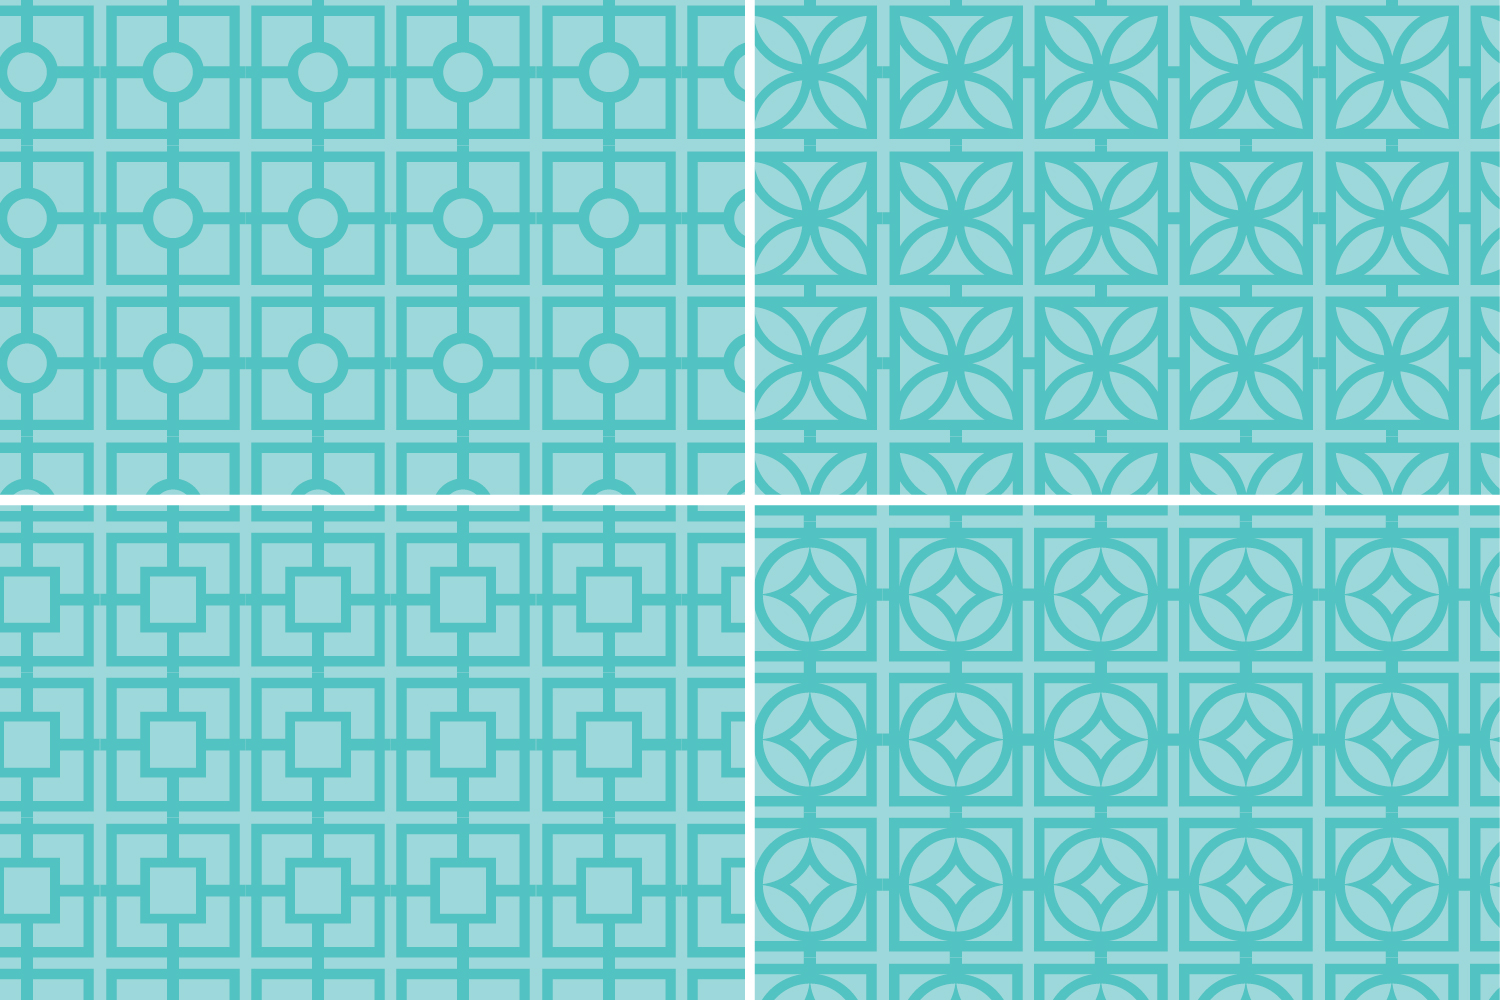 Turquoise Retro Breeze Block Patterns example image 5